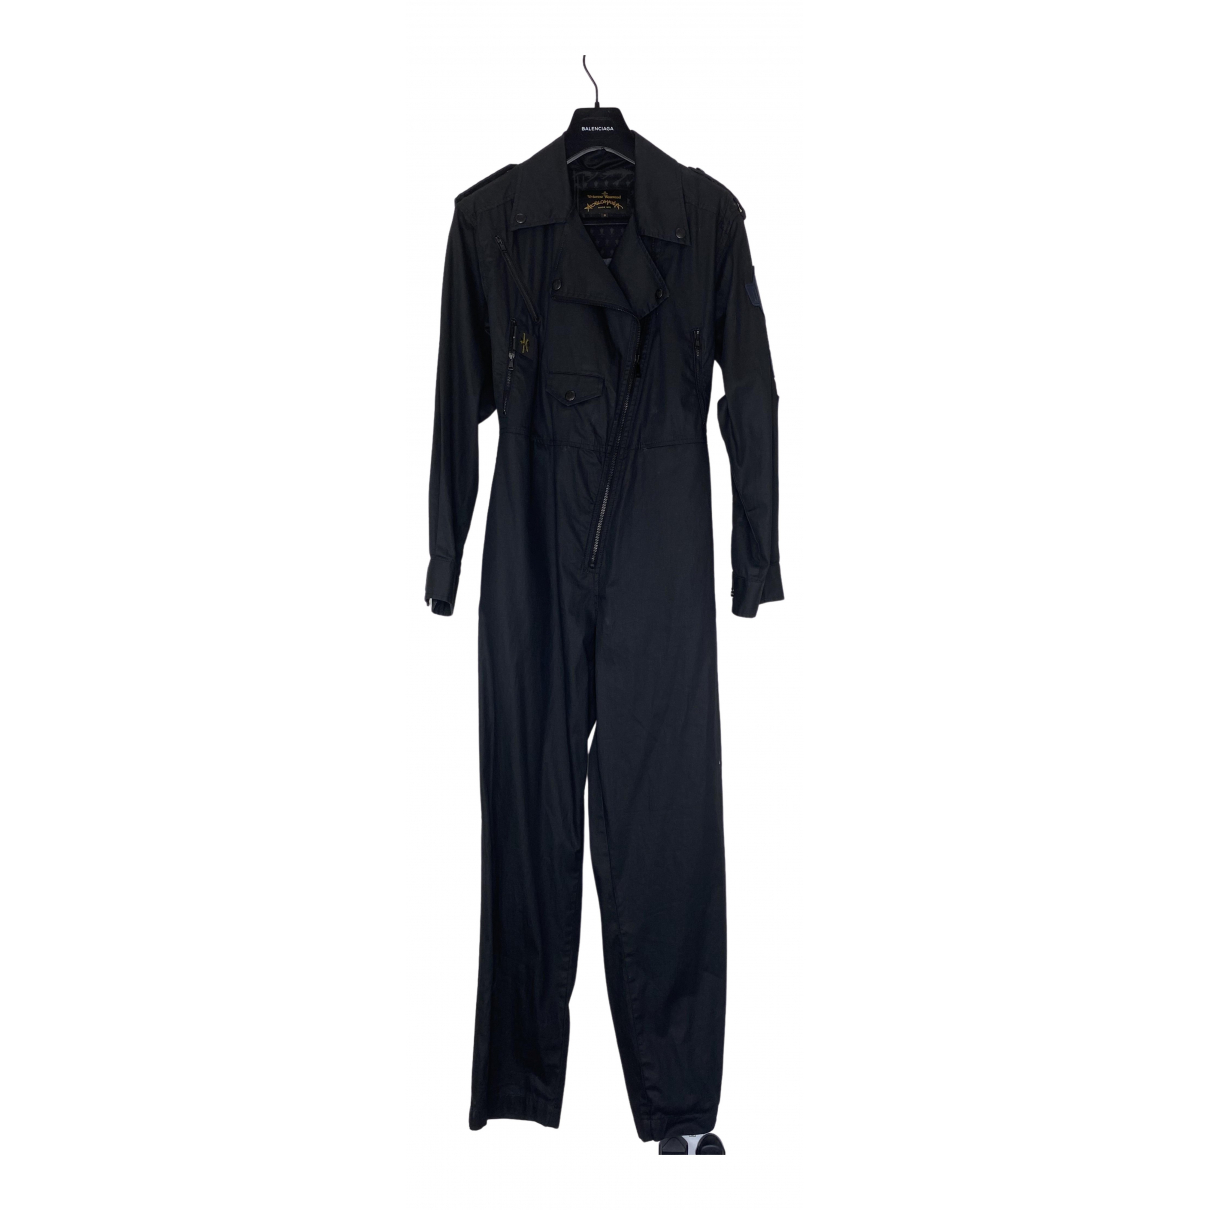 Vivienne Westwood Anglomania \N Black Cotton jumpsuit for Women S International